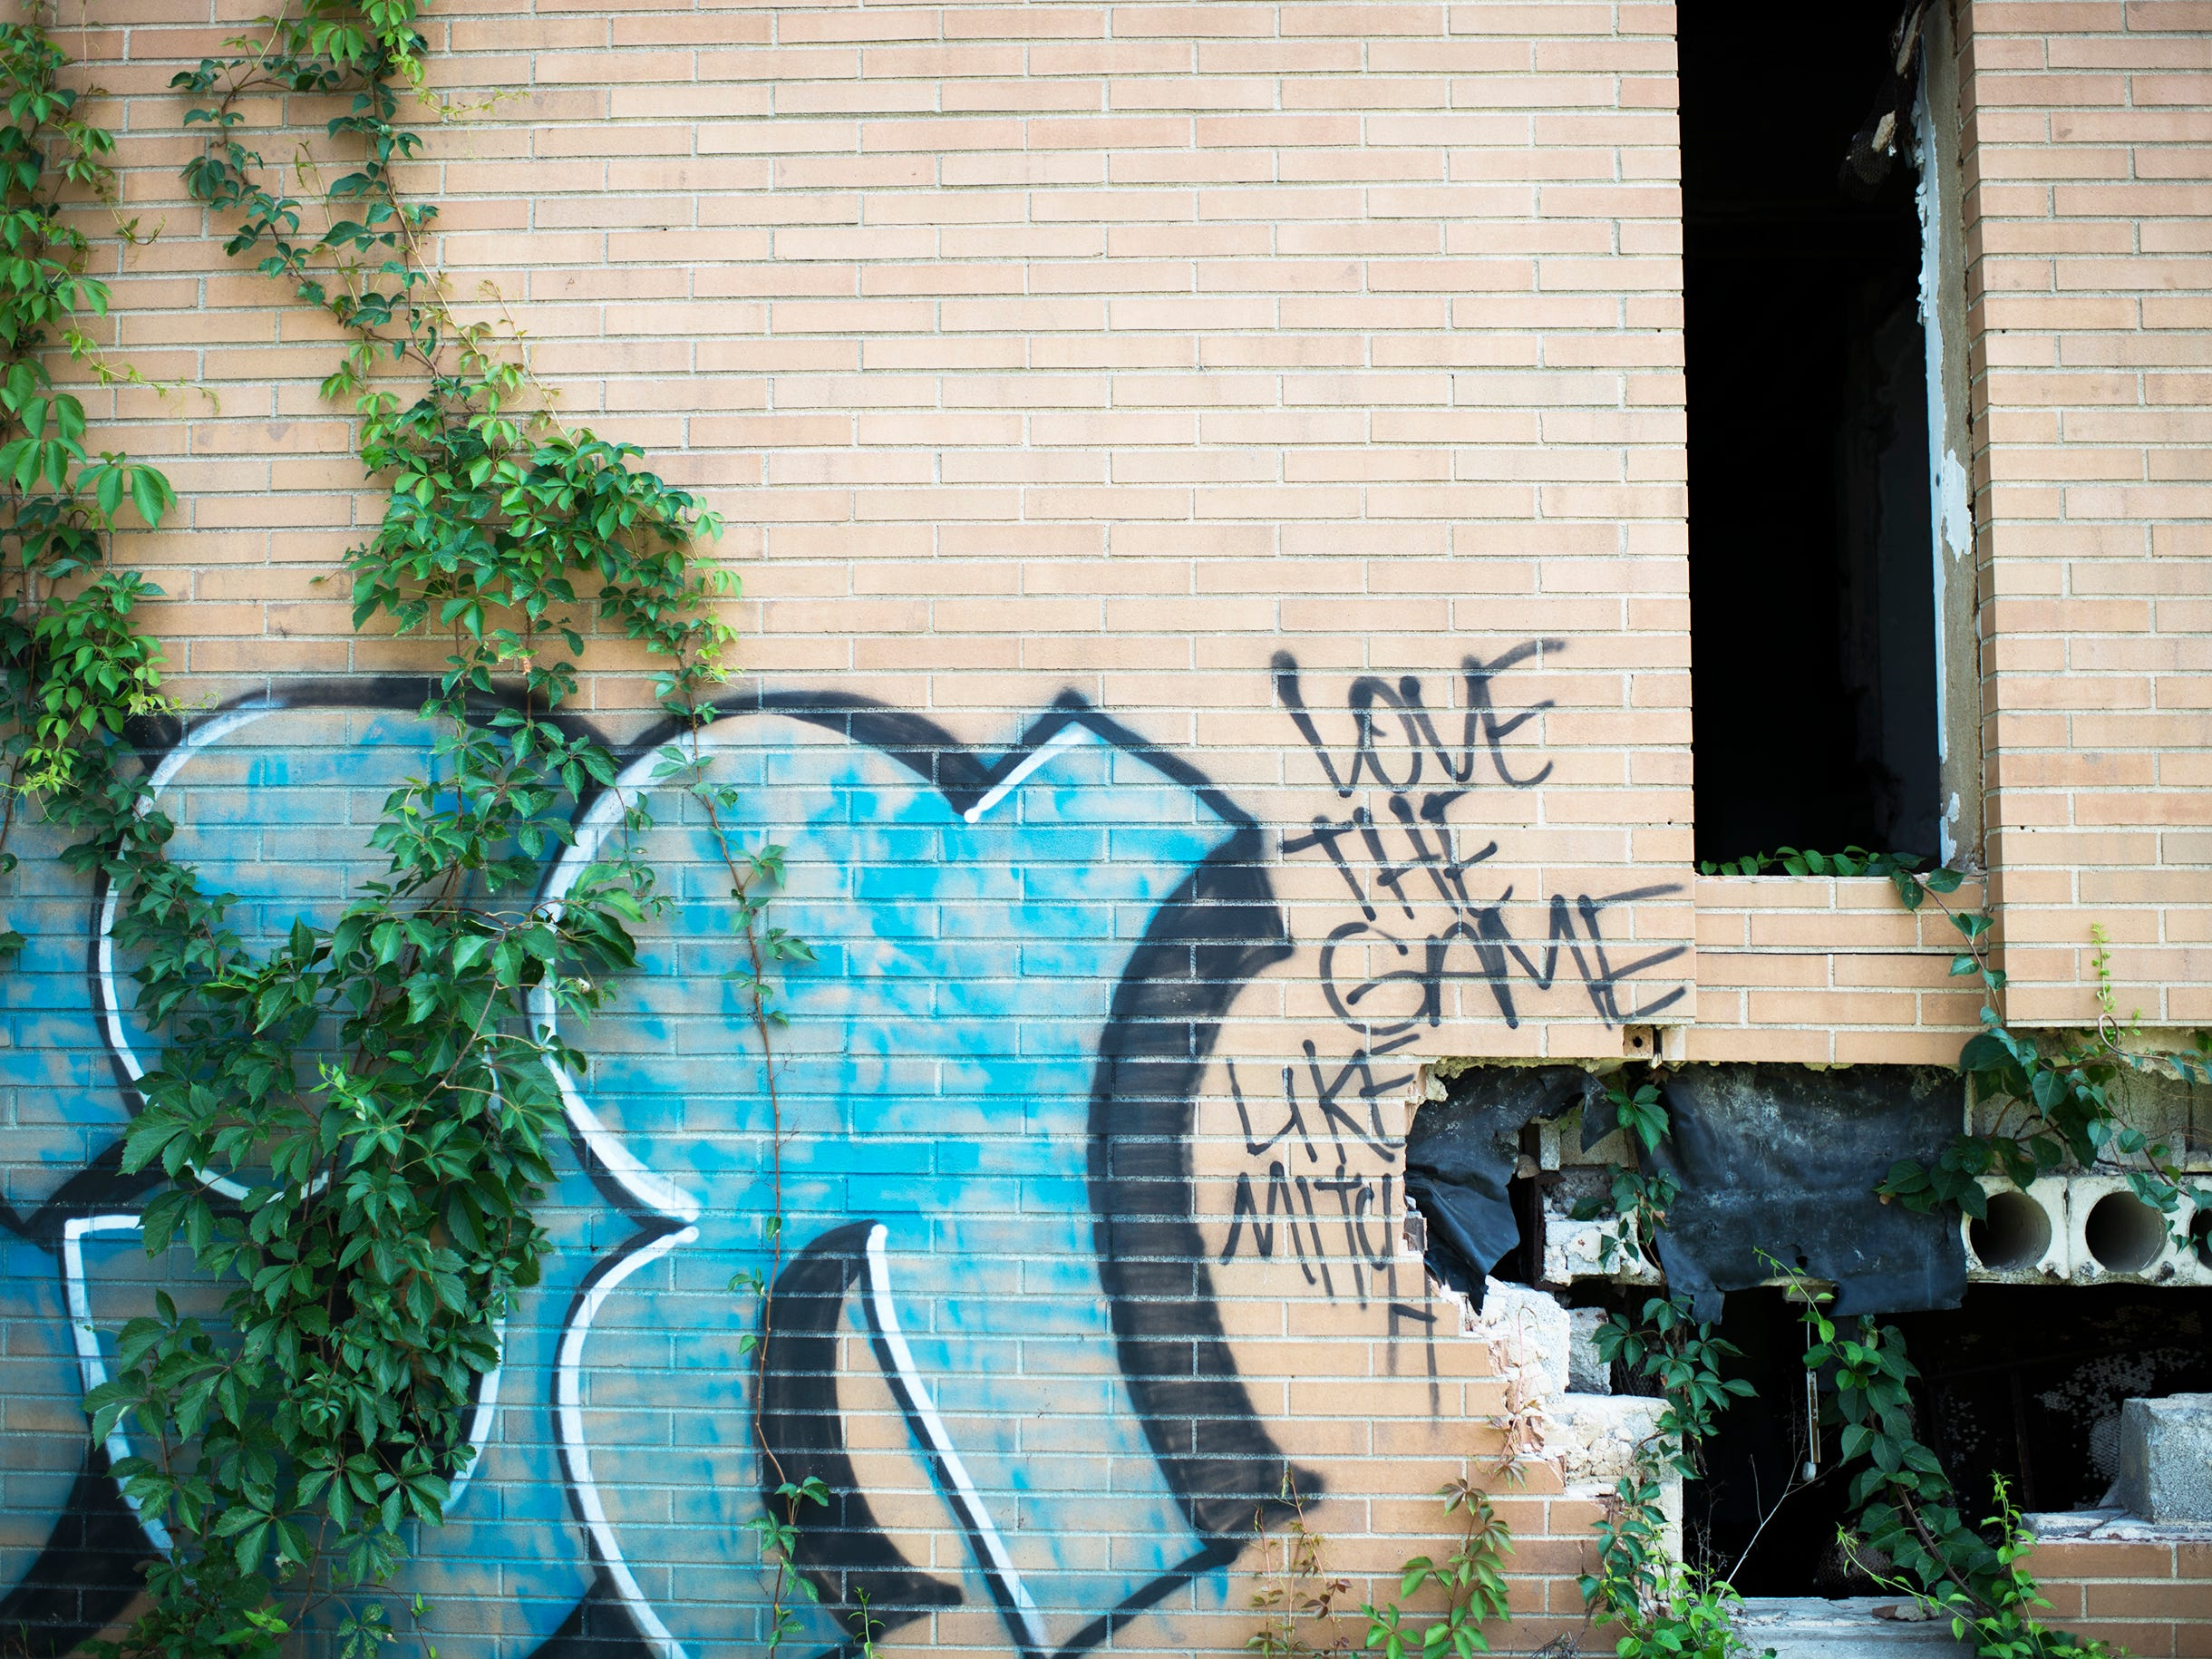 Graffiti covers the walls of crumbling buildings at the Camden Labs site Wednesday, Aug. 15, 2018 in Camden, N.J. The former toxic and illegal dumping site will be cleaned and cleared to make way for recreational open space.